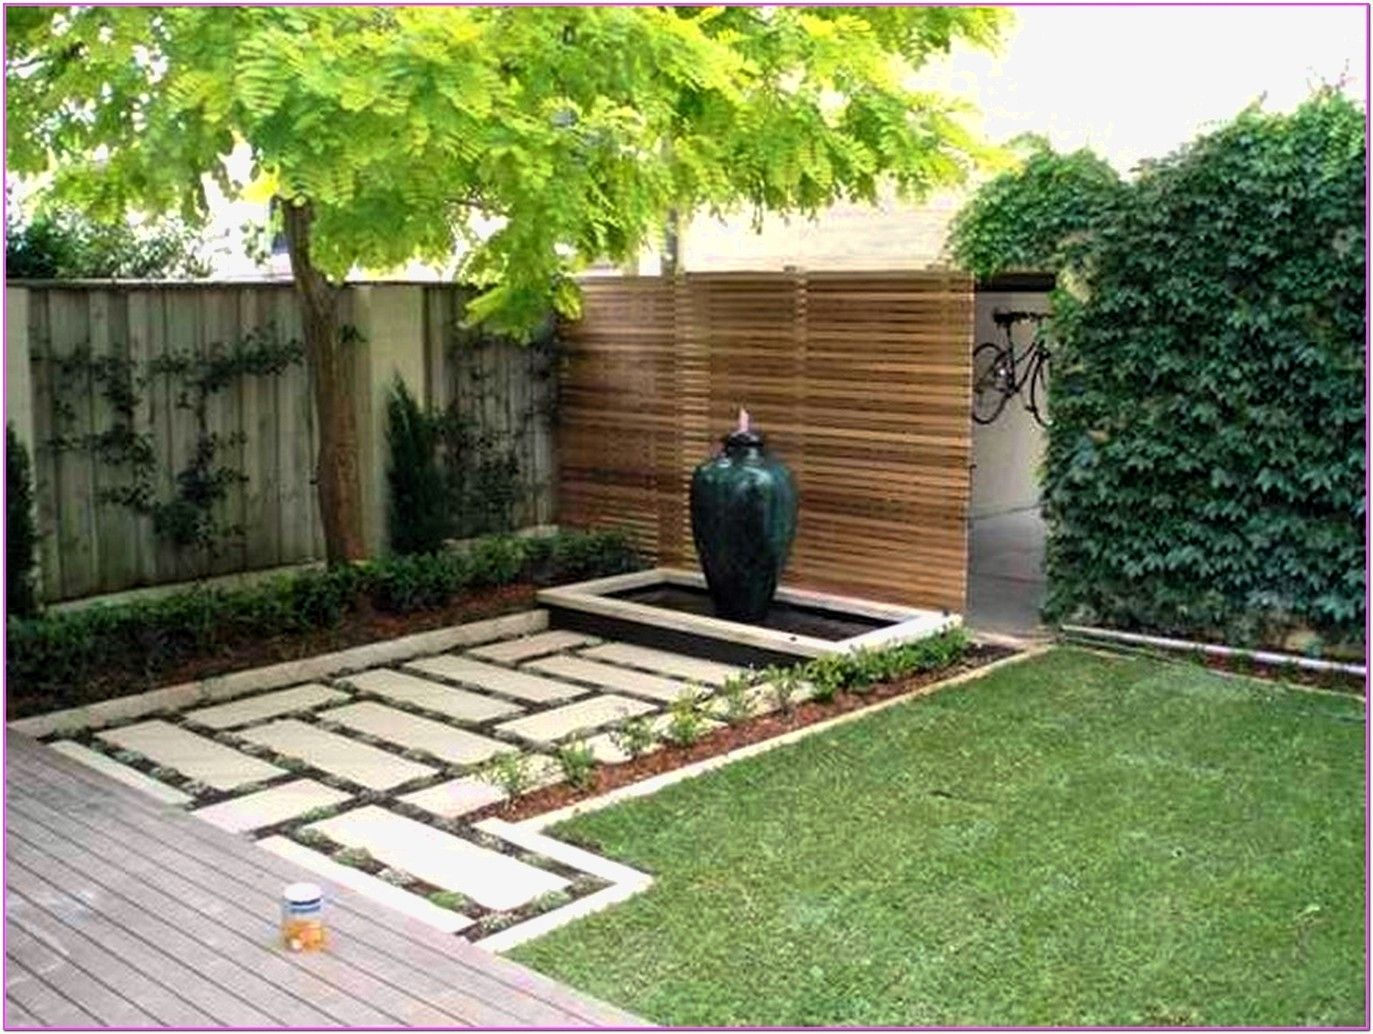 I Could See Borrowing Some Ideas From This Award Winning ... on Modern Landscaping Ideas For Small Backyards id=21366